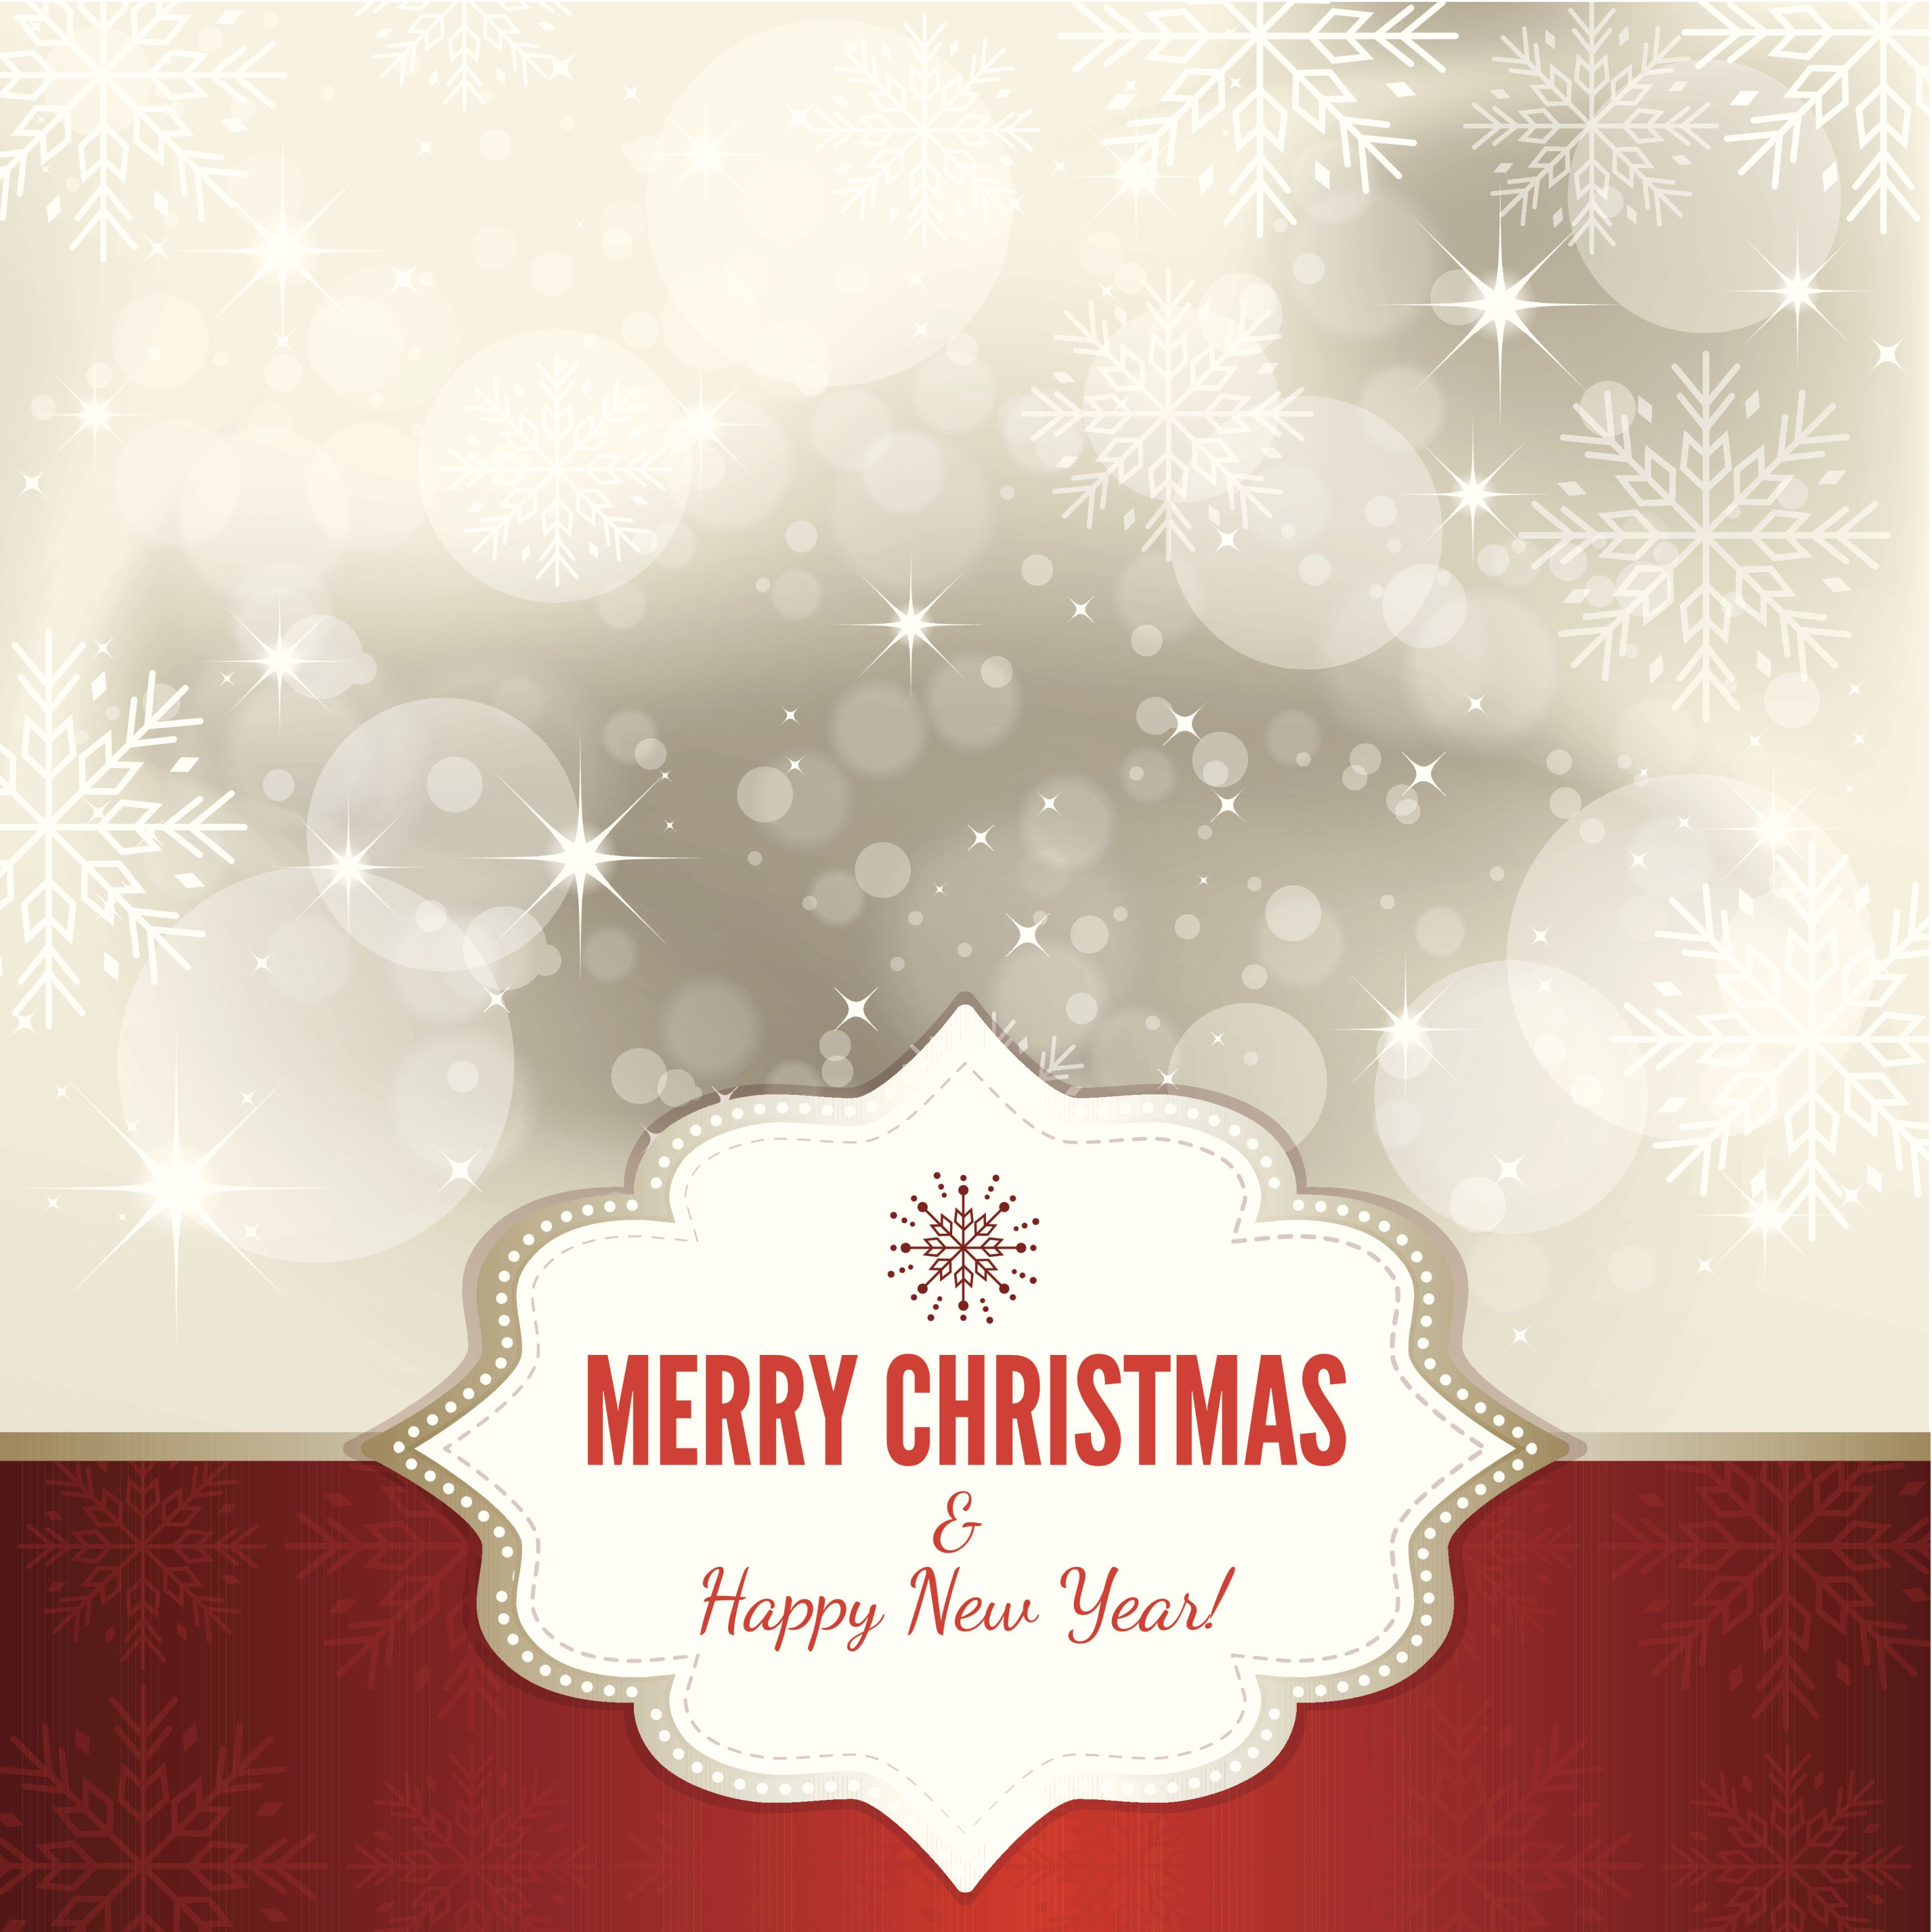 We\'re closed today to celebrate Christmas! From all of us at ...